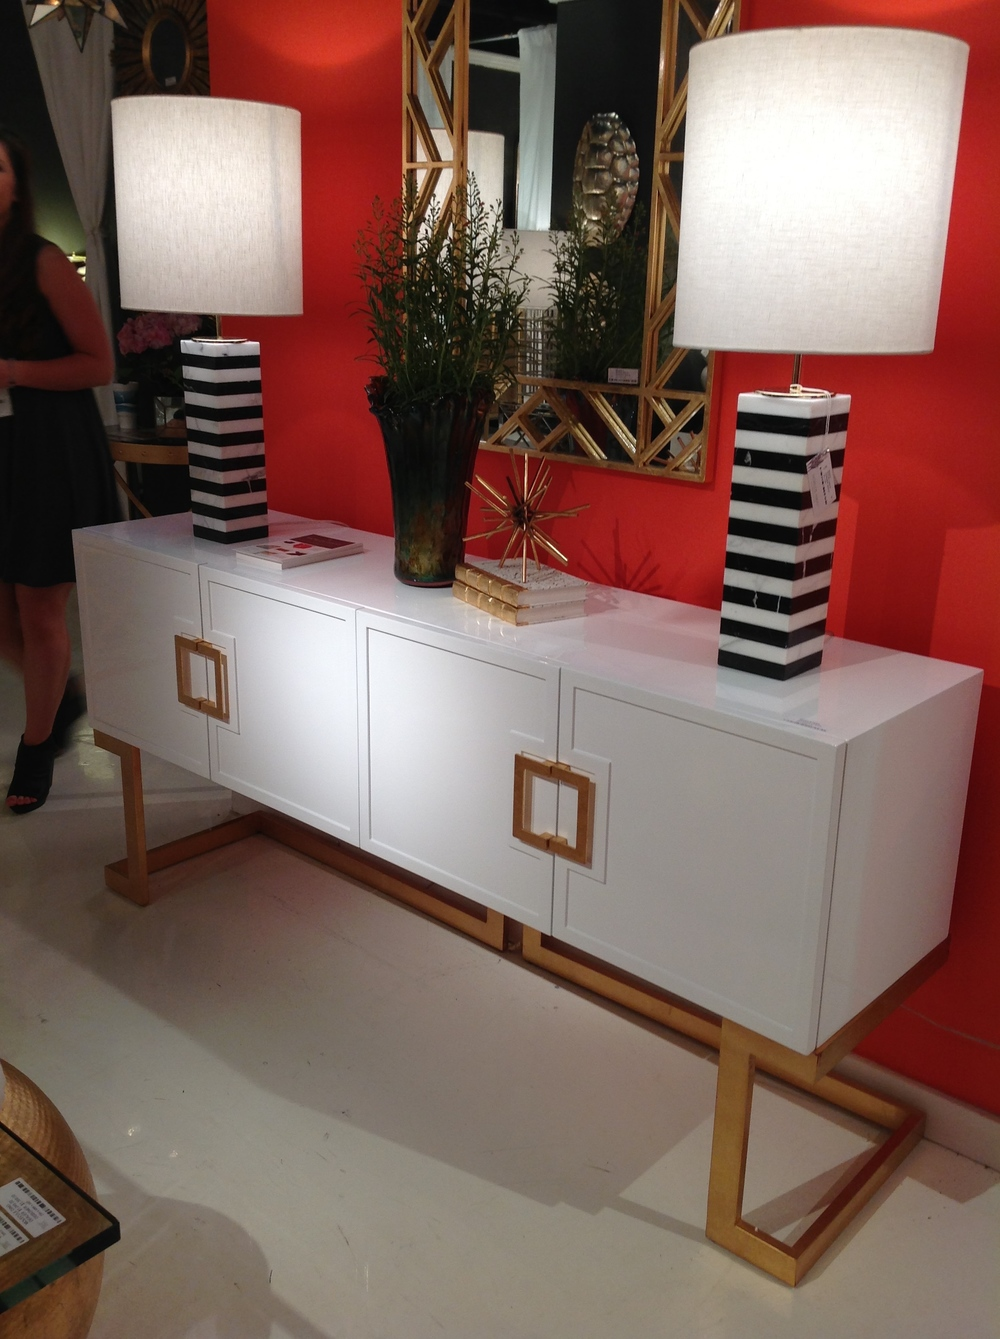 A sleek, contemporary style buffet table